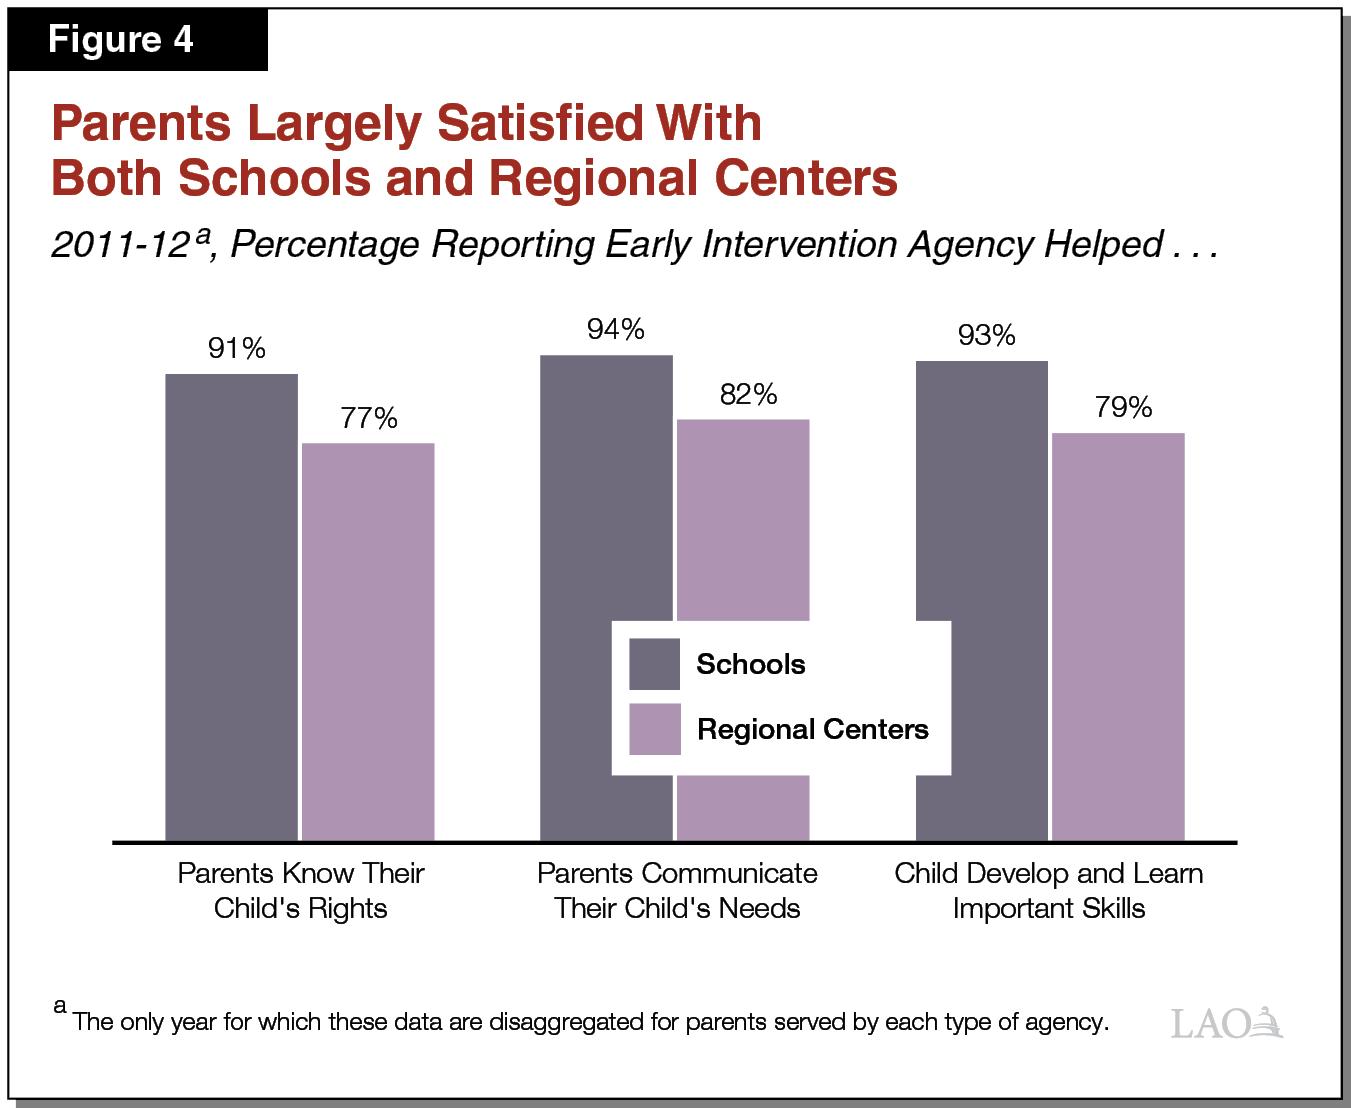 Figure 4 - Parents Largely Satisfied With Both Schools and Regional Centers